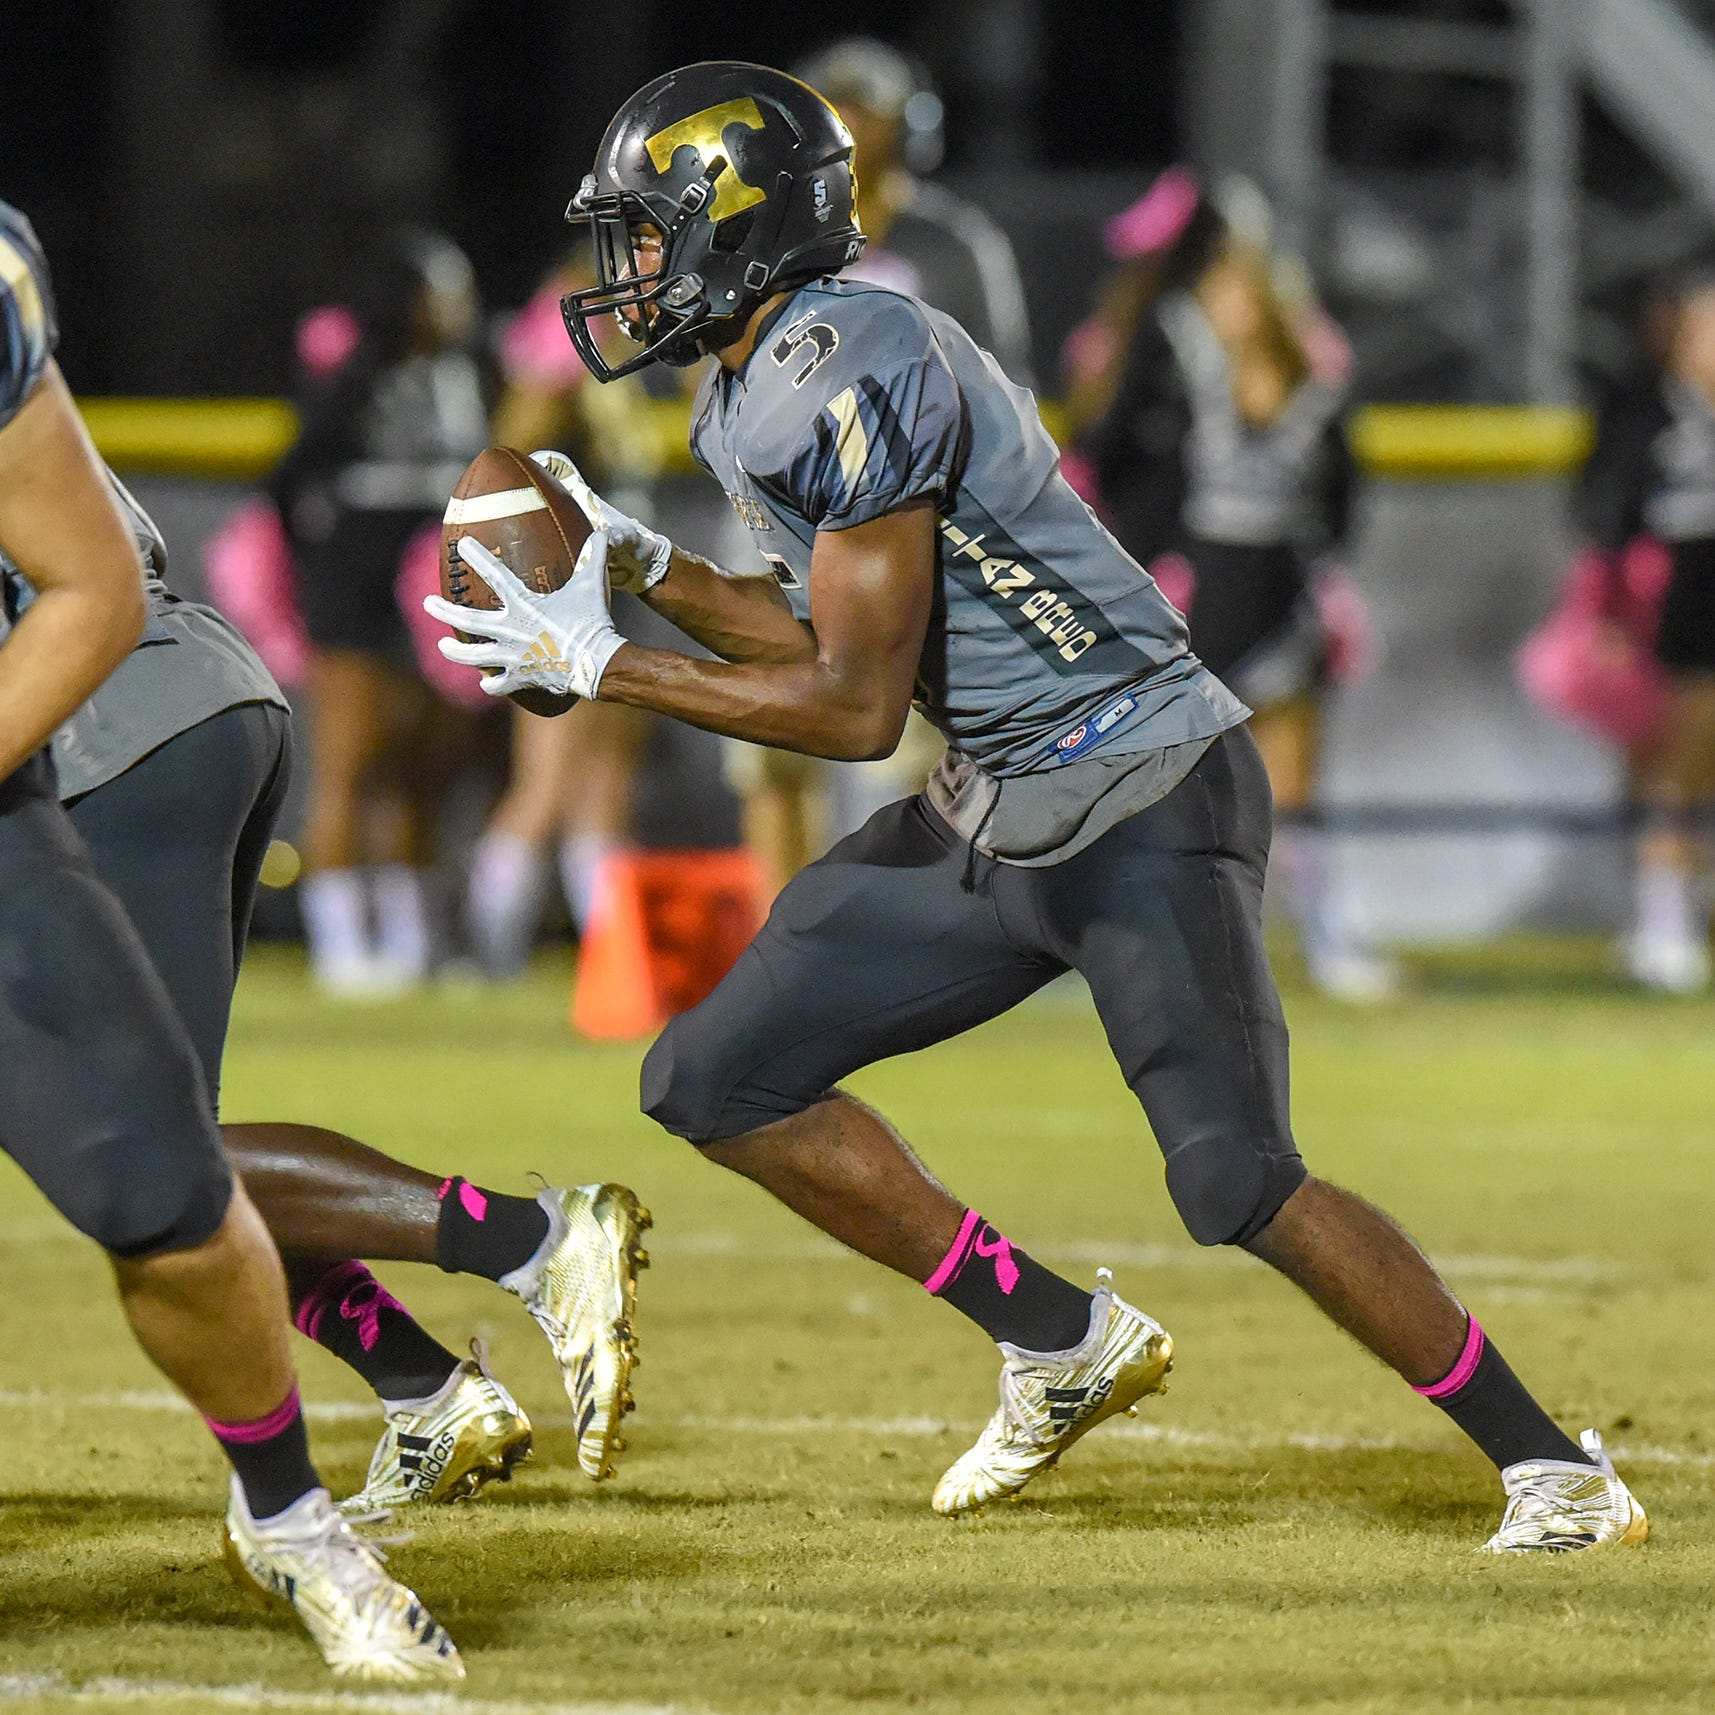 Inside Friday Night: Winning season keeps Treasure Coast trending upward